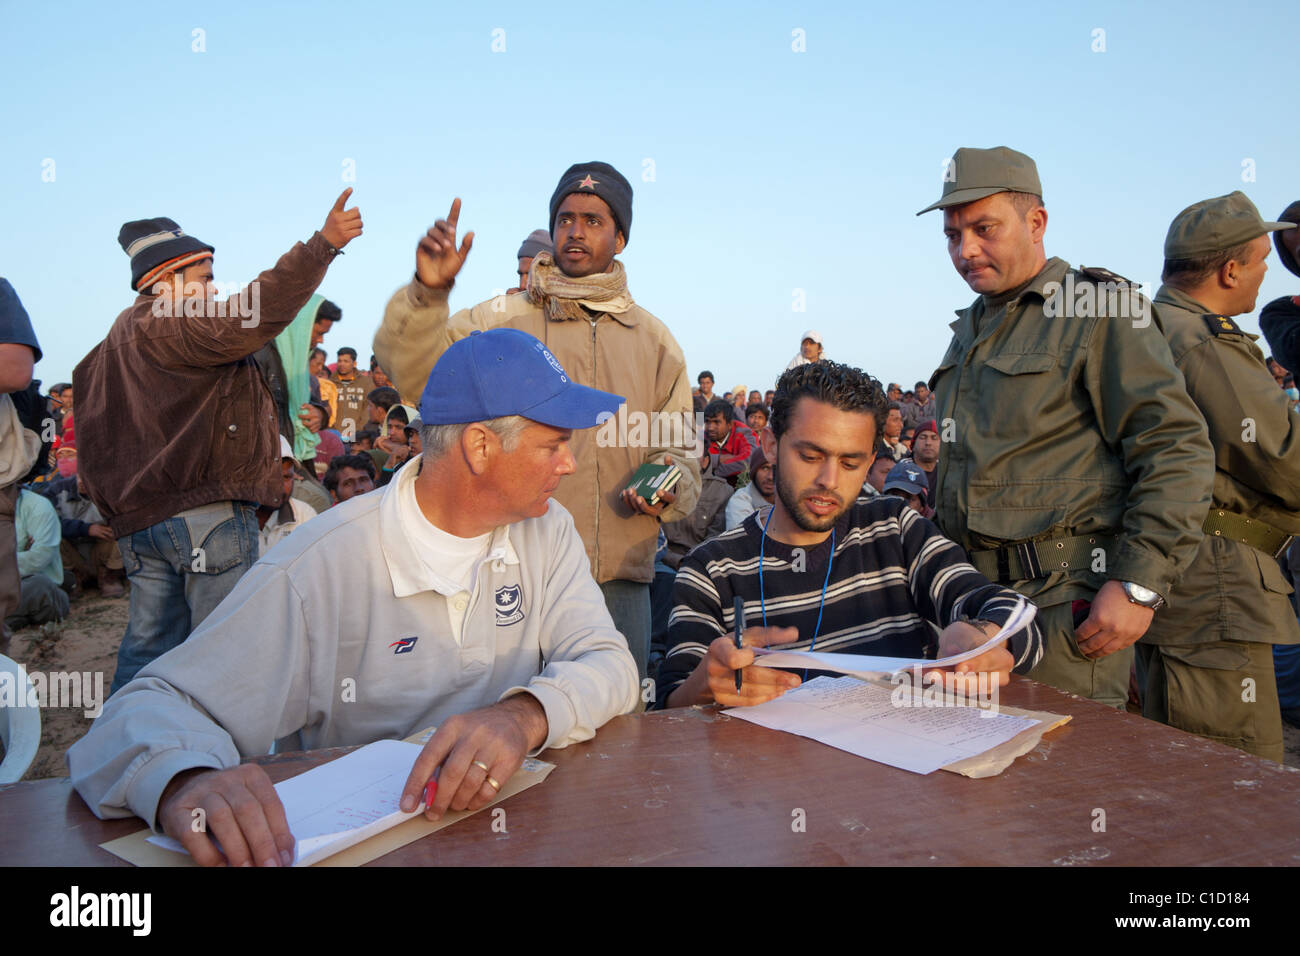 Refugees in the Shousha refugee camp waiting for their return documents, Ben Gardane, Tunisia - Stock Image